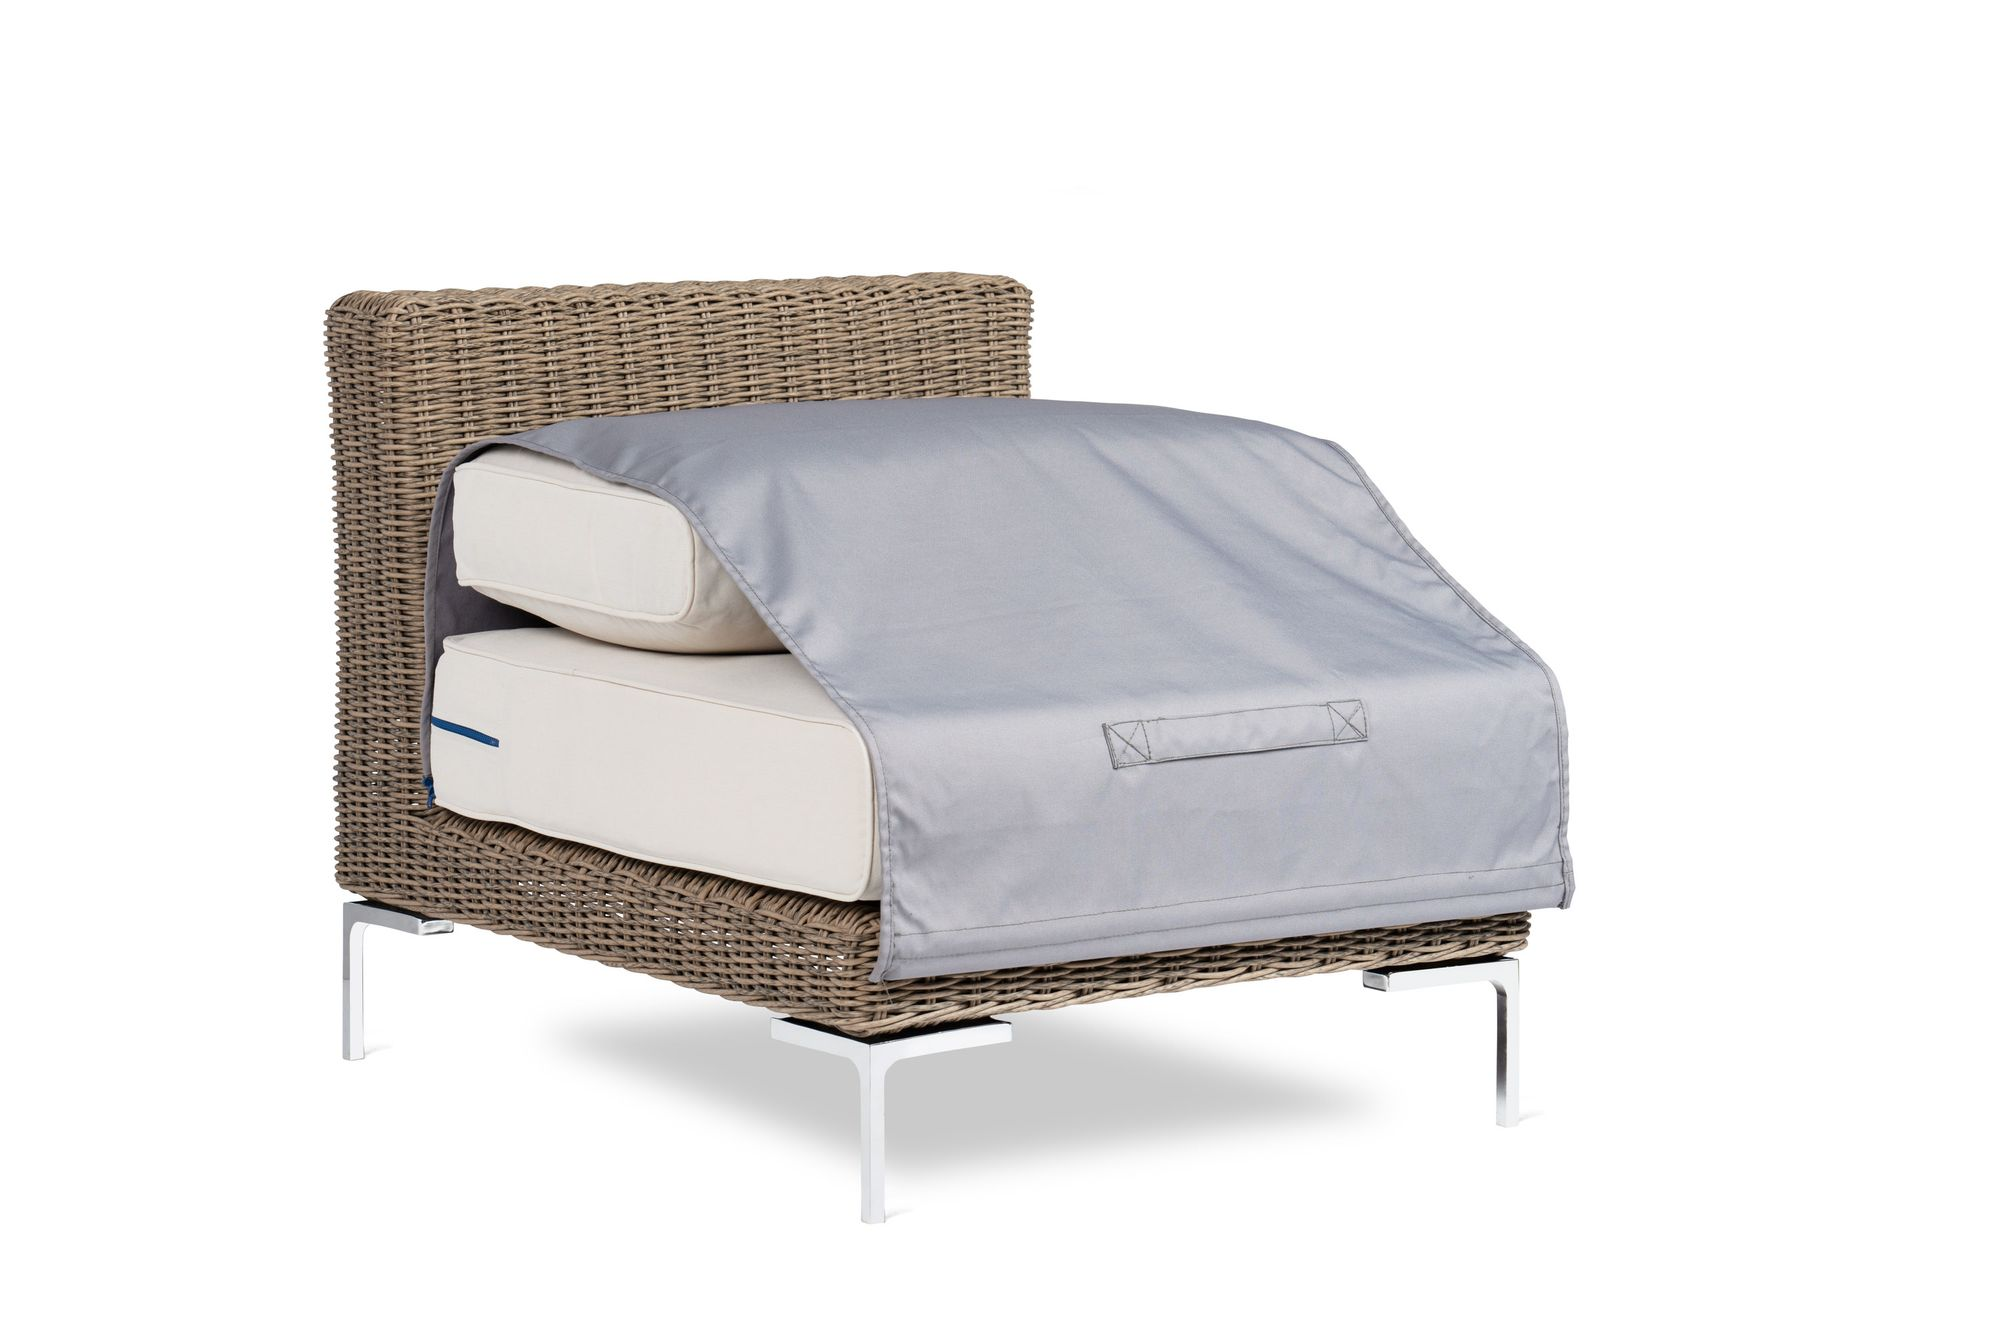 Keeping Outdoor Cushions Dry and Clean Is Now Easier Than Ever